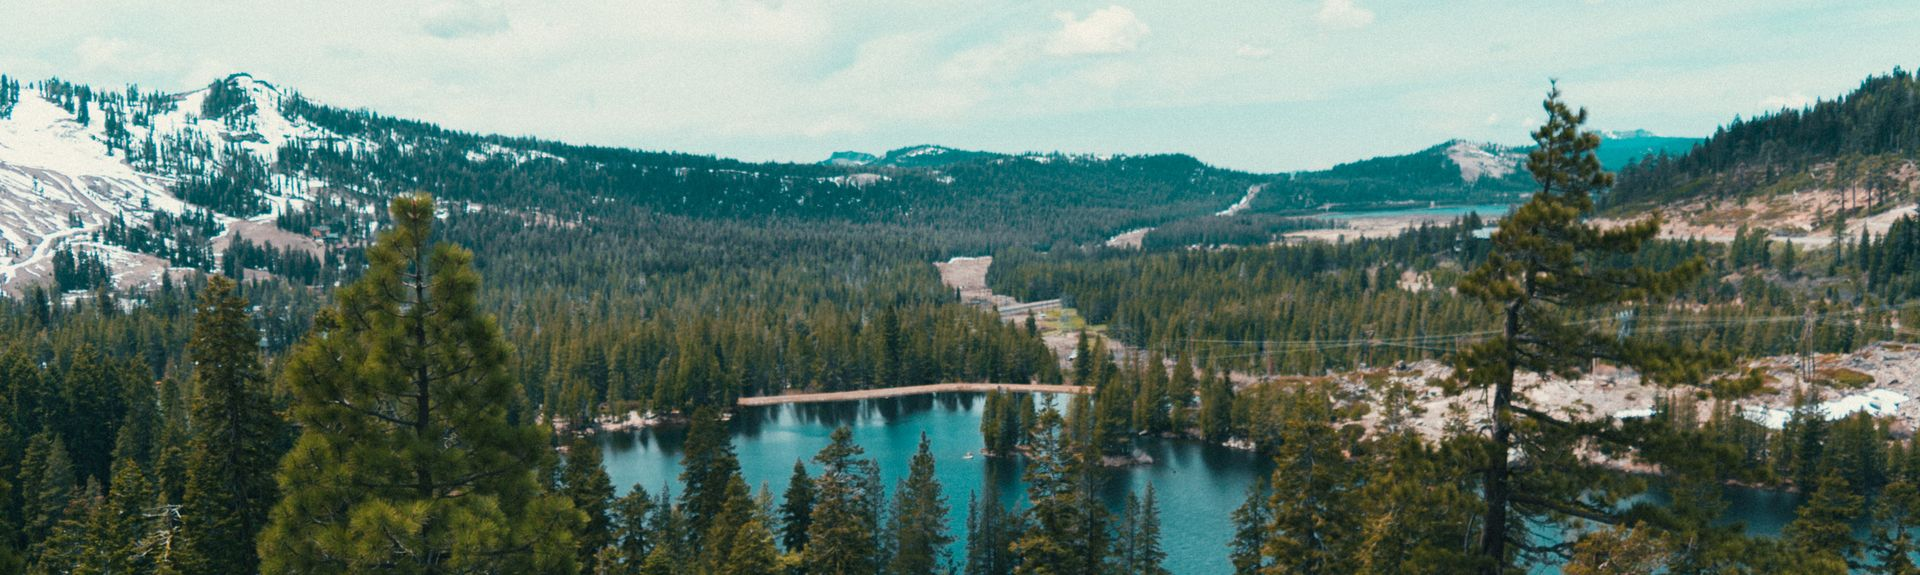 Truckee, California, United States of America